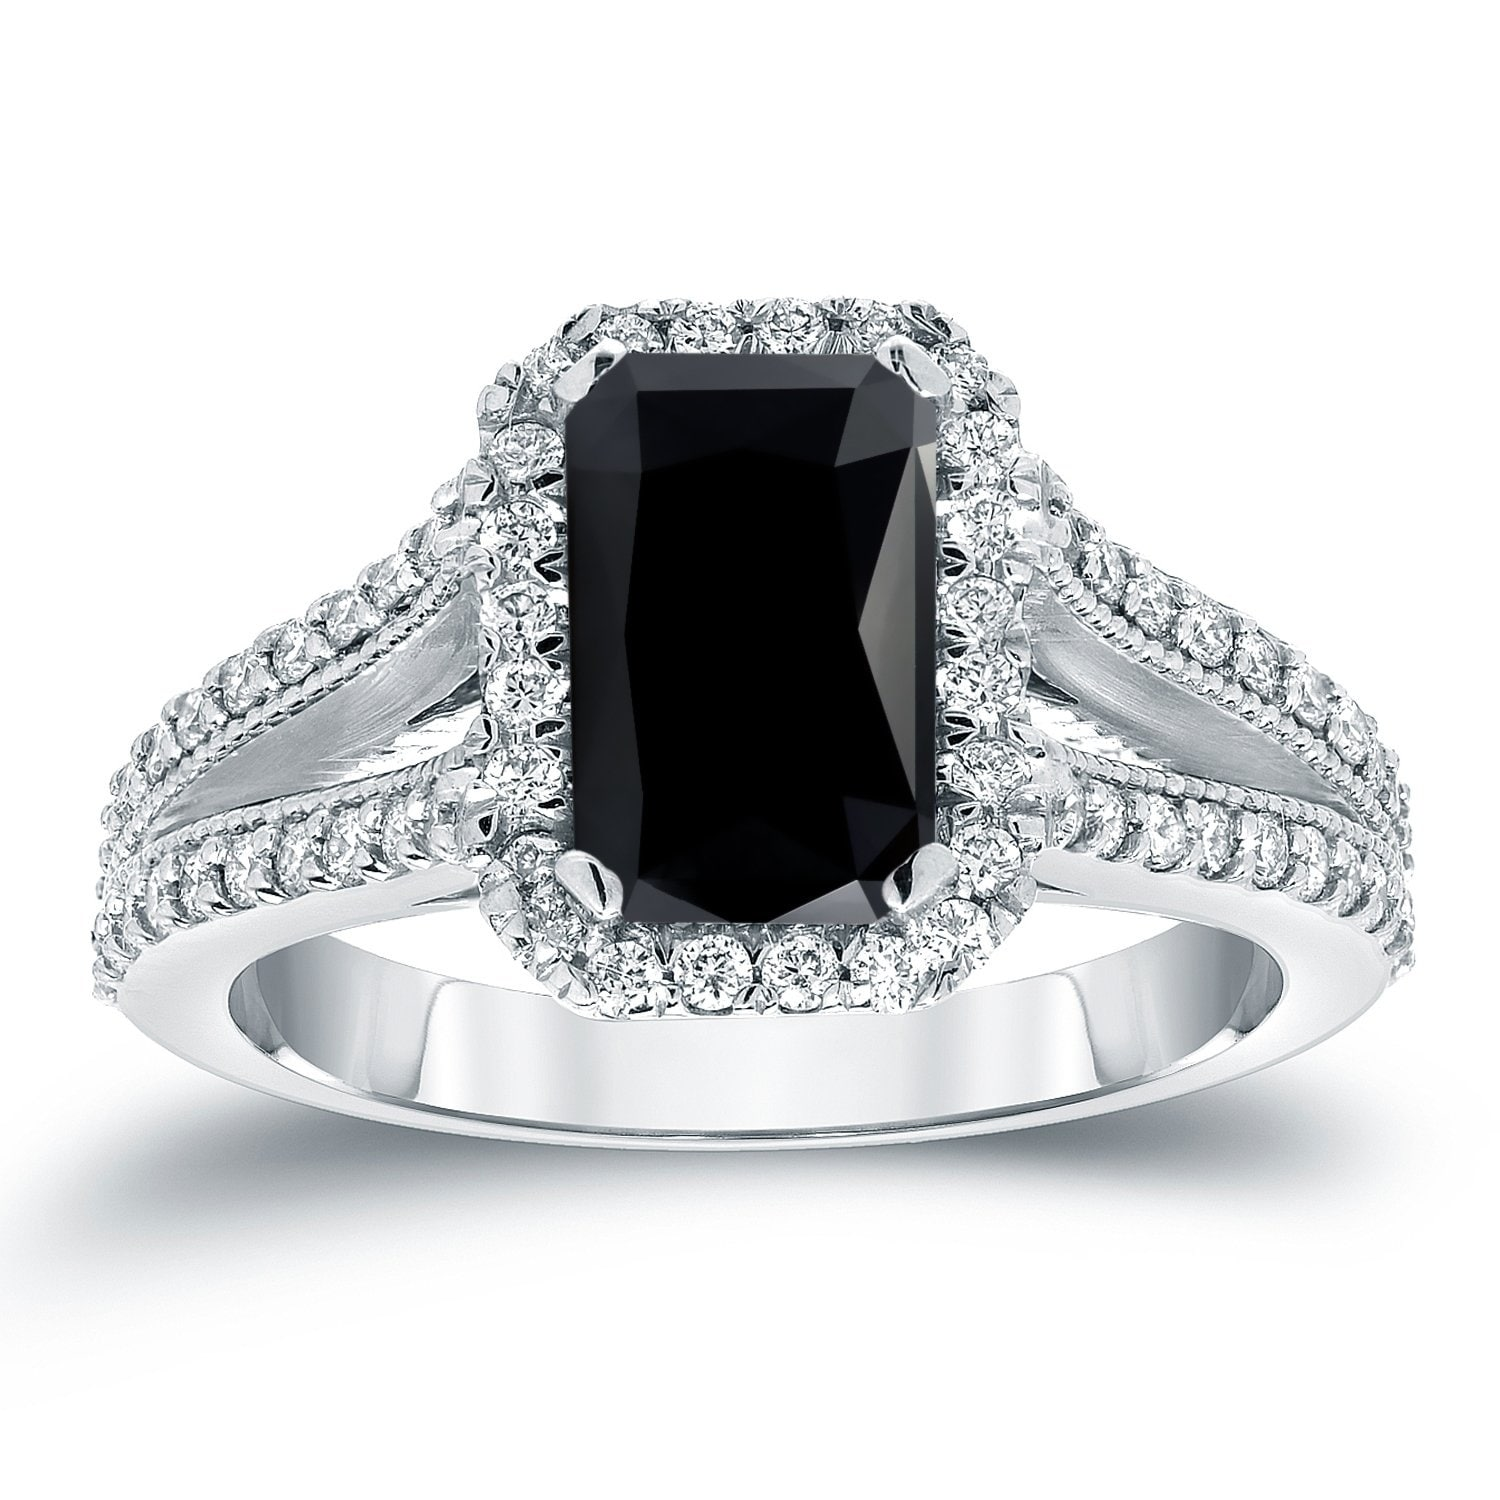 Shop Black Friday Deals On Auriya 18k Gold 2 1 2ctw Emerald Cut Halo Black Diamond Engagement Ring Overstock 16788528